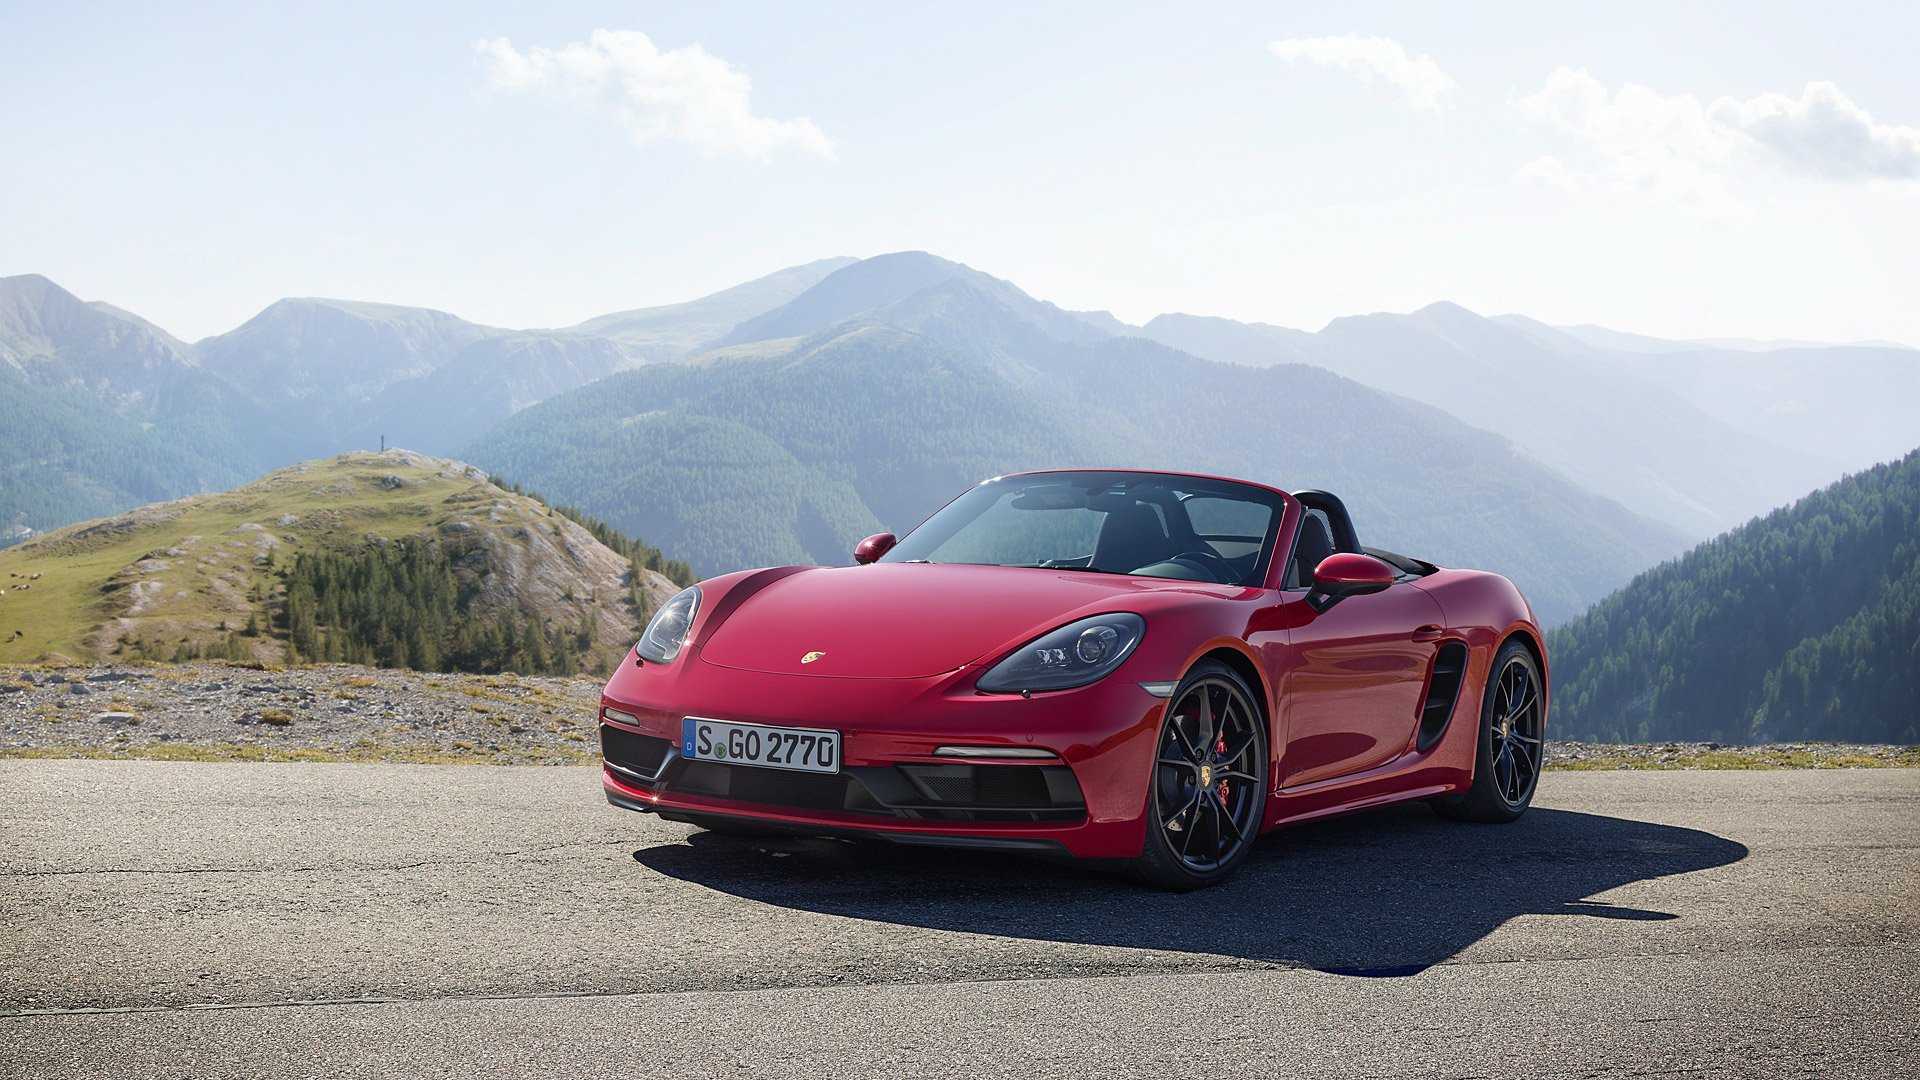 13 Porsche 718 Boxster Gts Hd Wallpapers Background Images Wallpaper Abyss